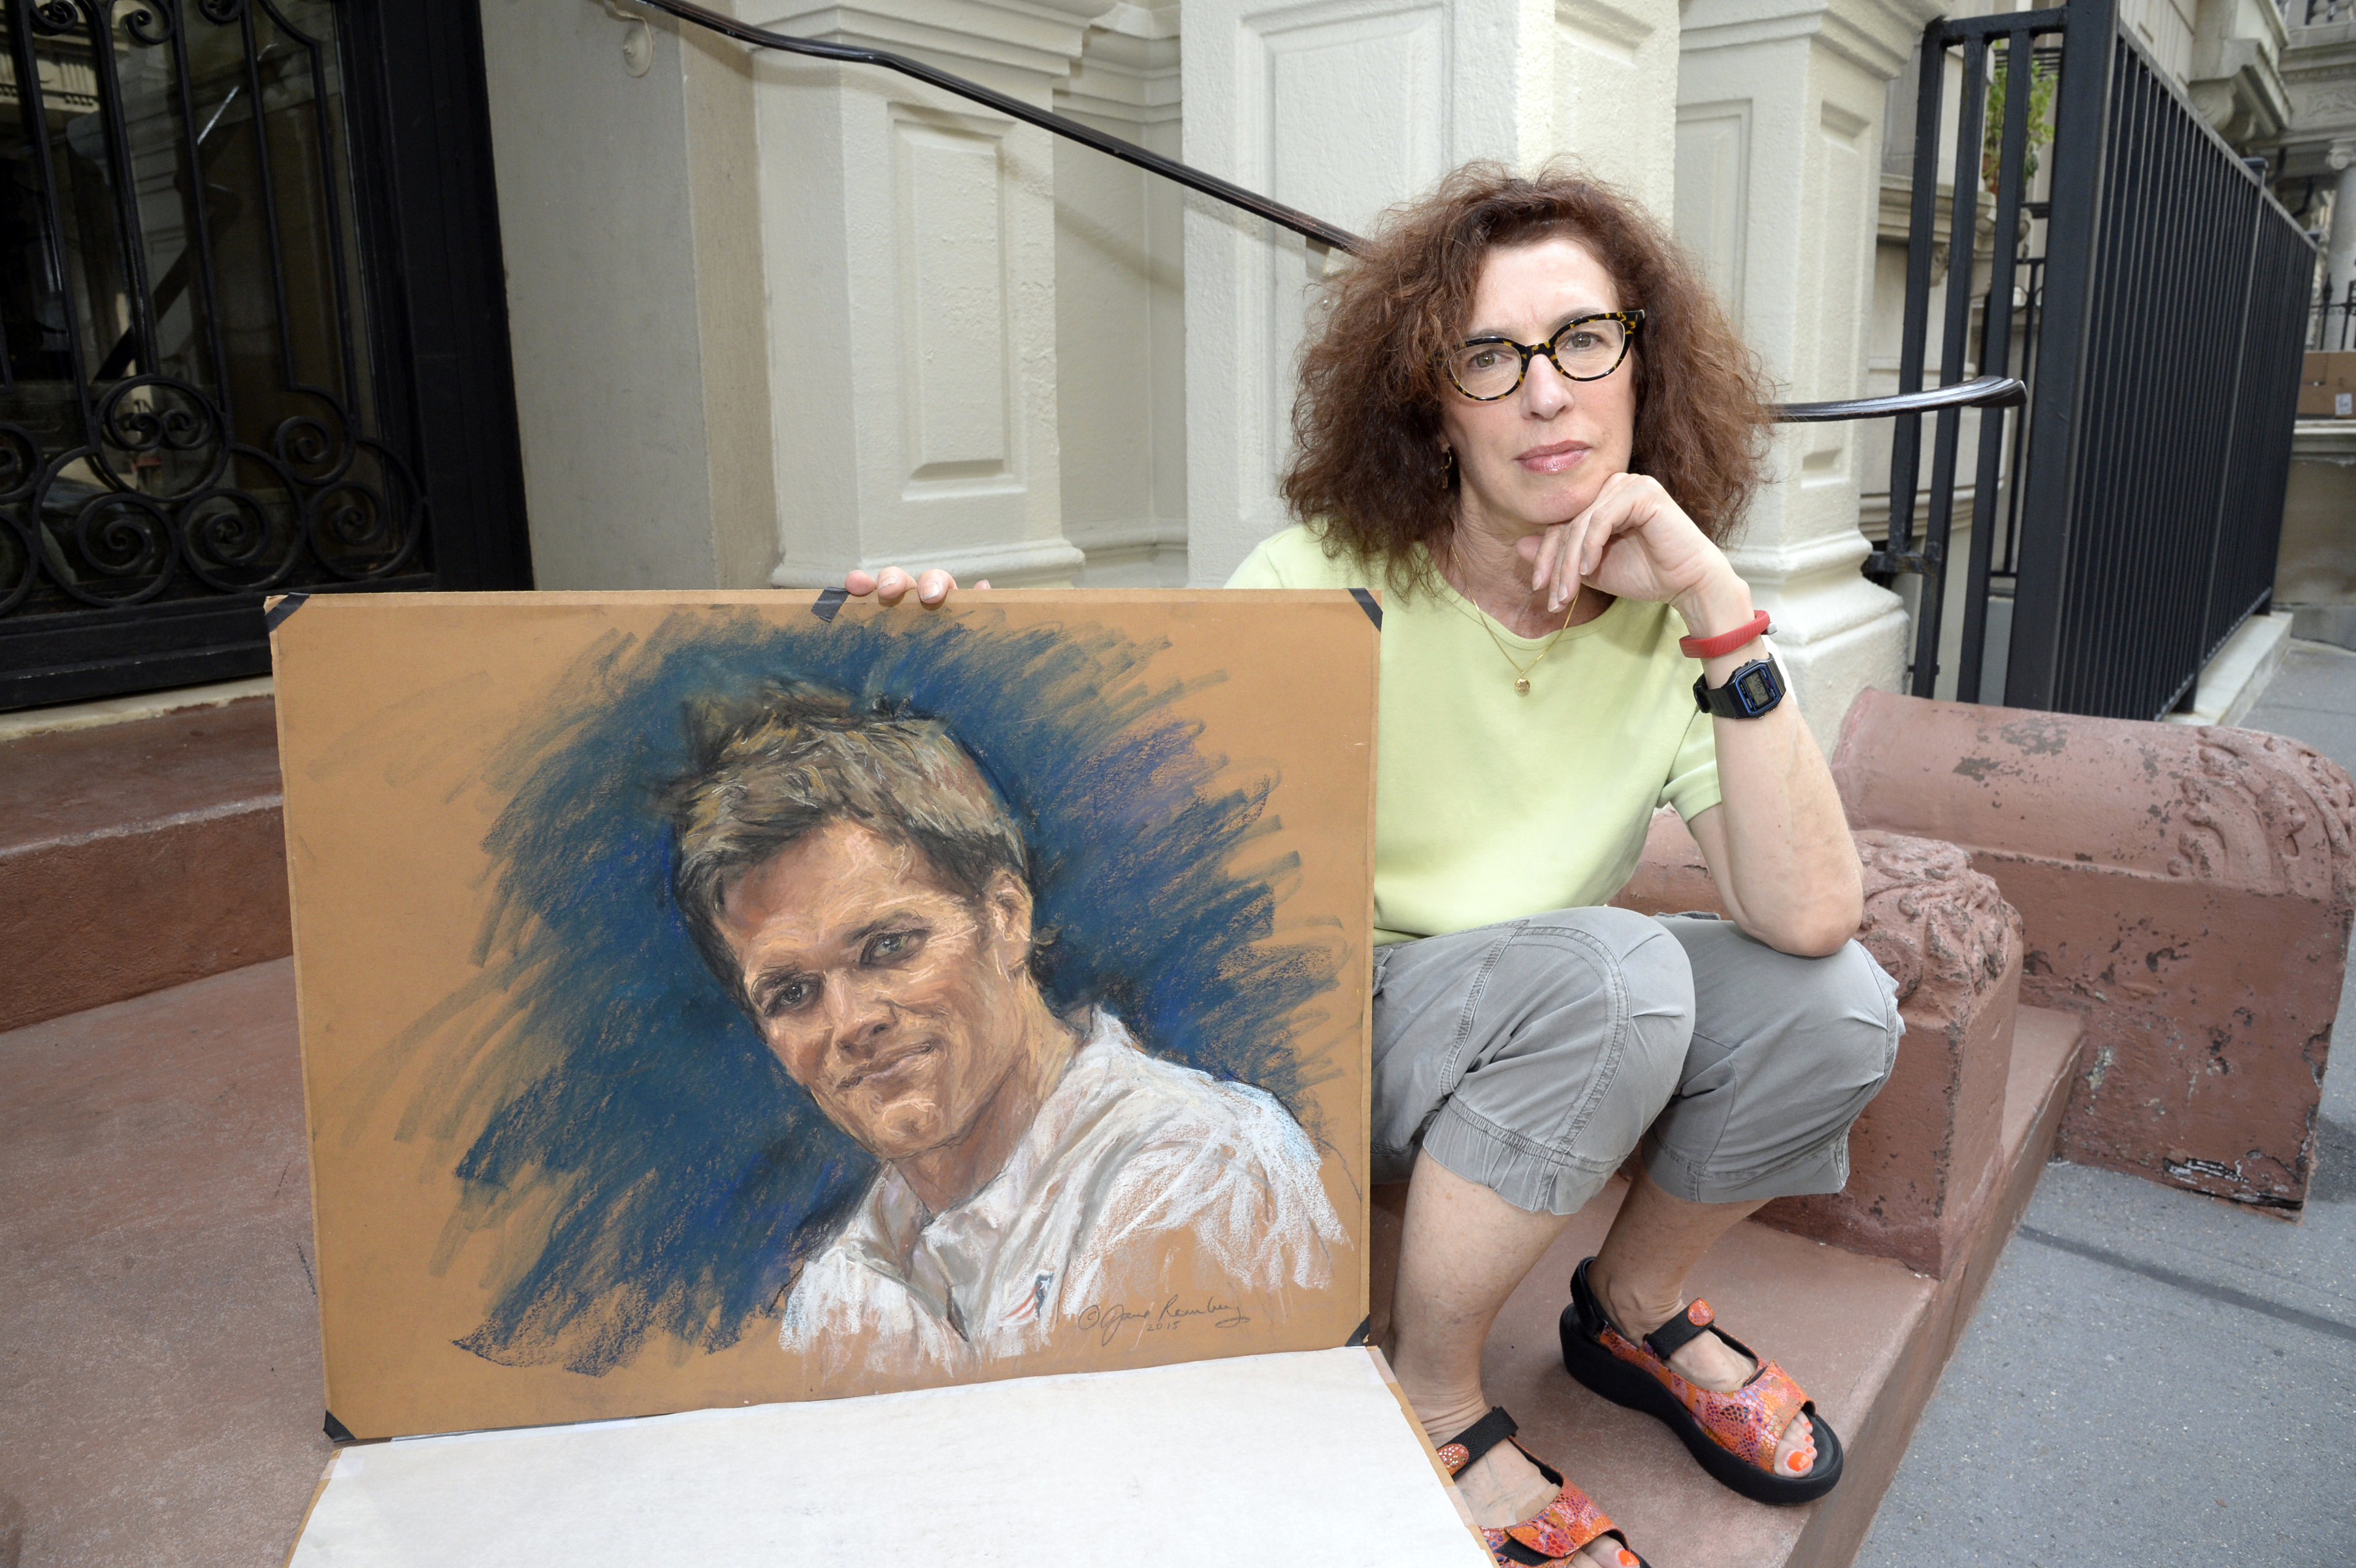 Courtroom artist Jane Rosenberg with a more pleasant sketch of New England Patriots quarterback Tom Brady.